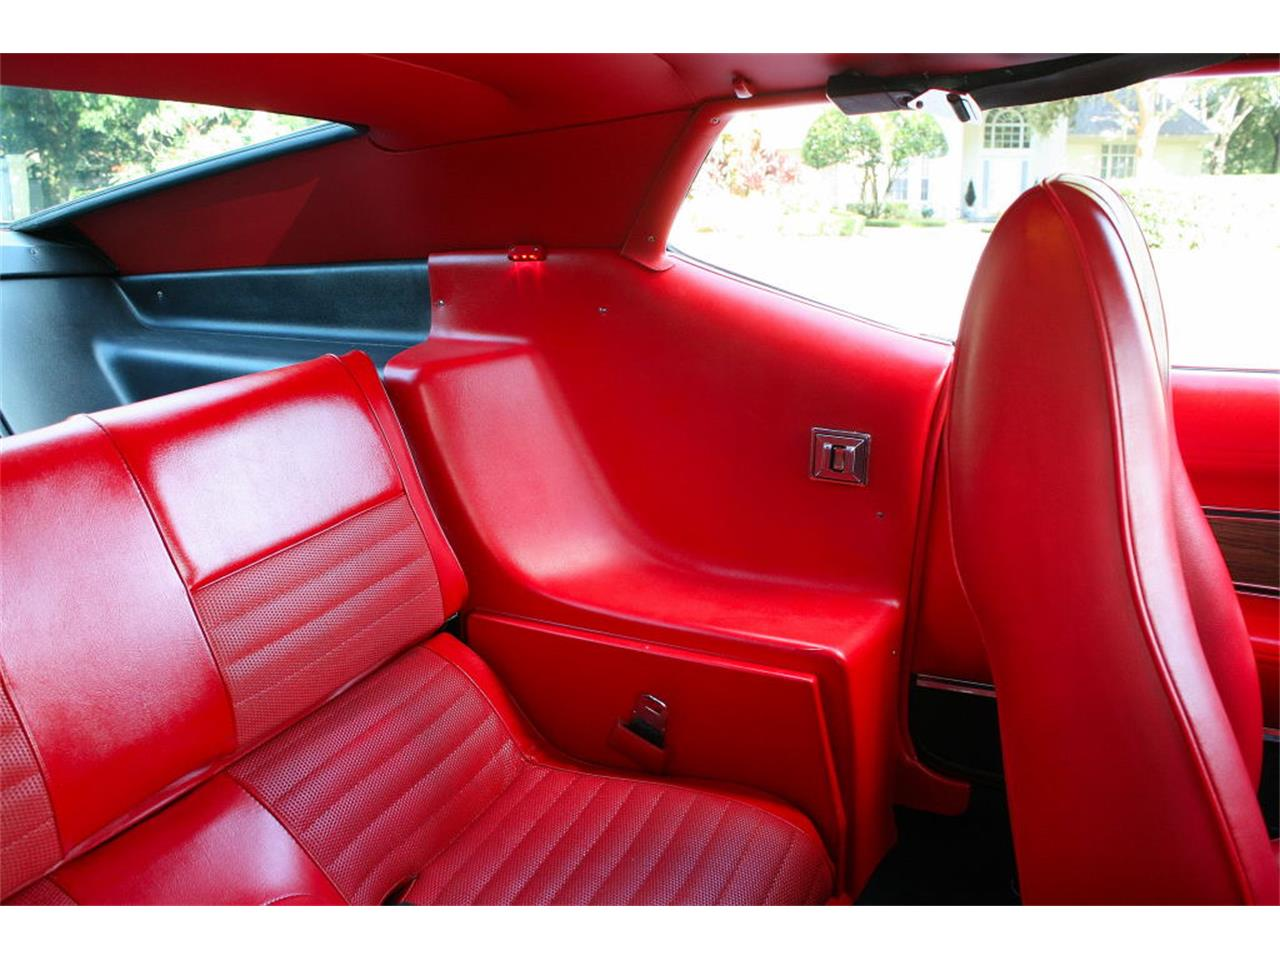 Large Picture of Classic 1972 Mustang - $39,500.00 Offered by MJC Classic Cars - MGWW